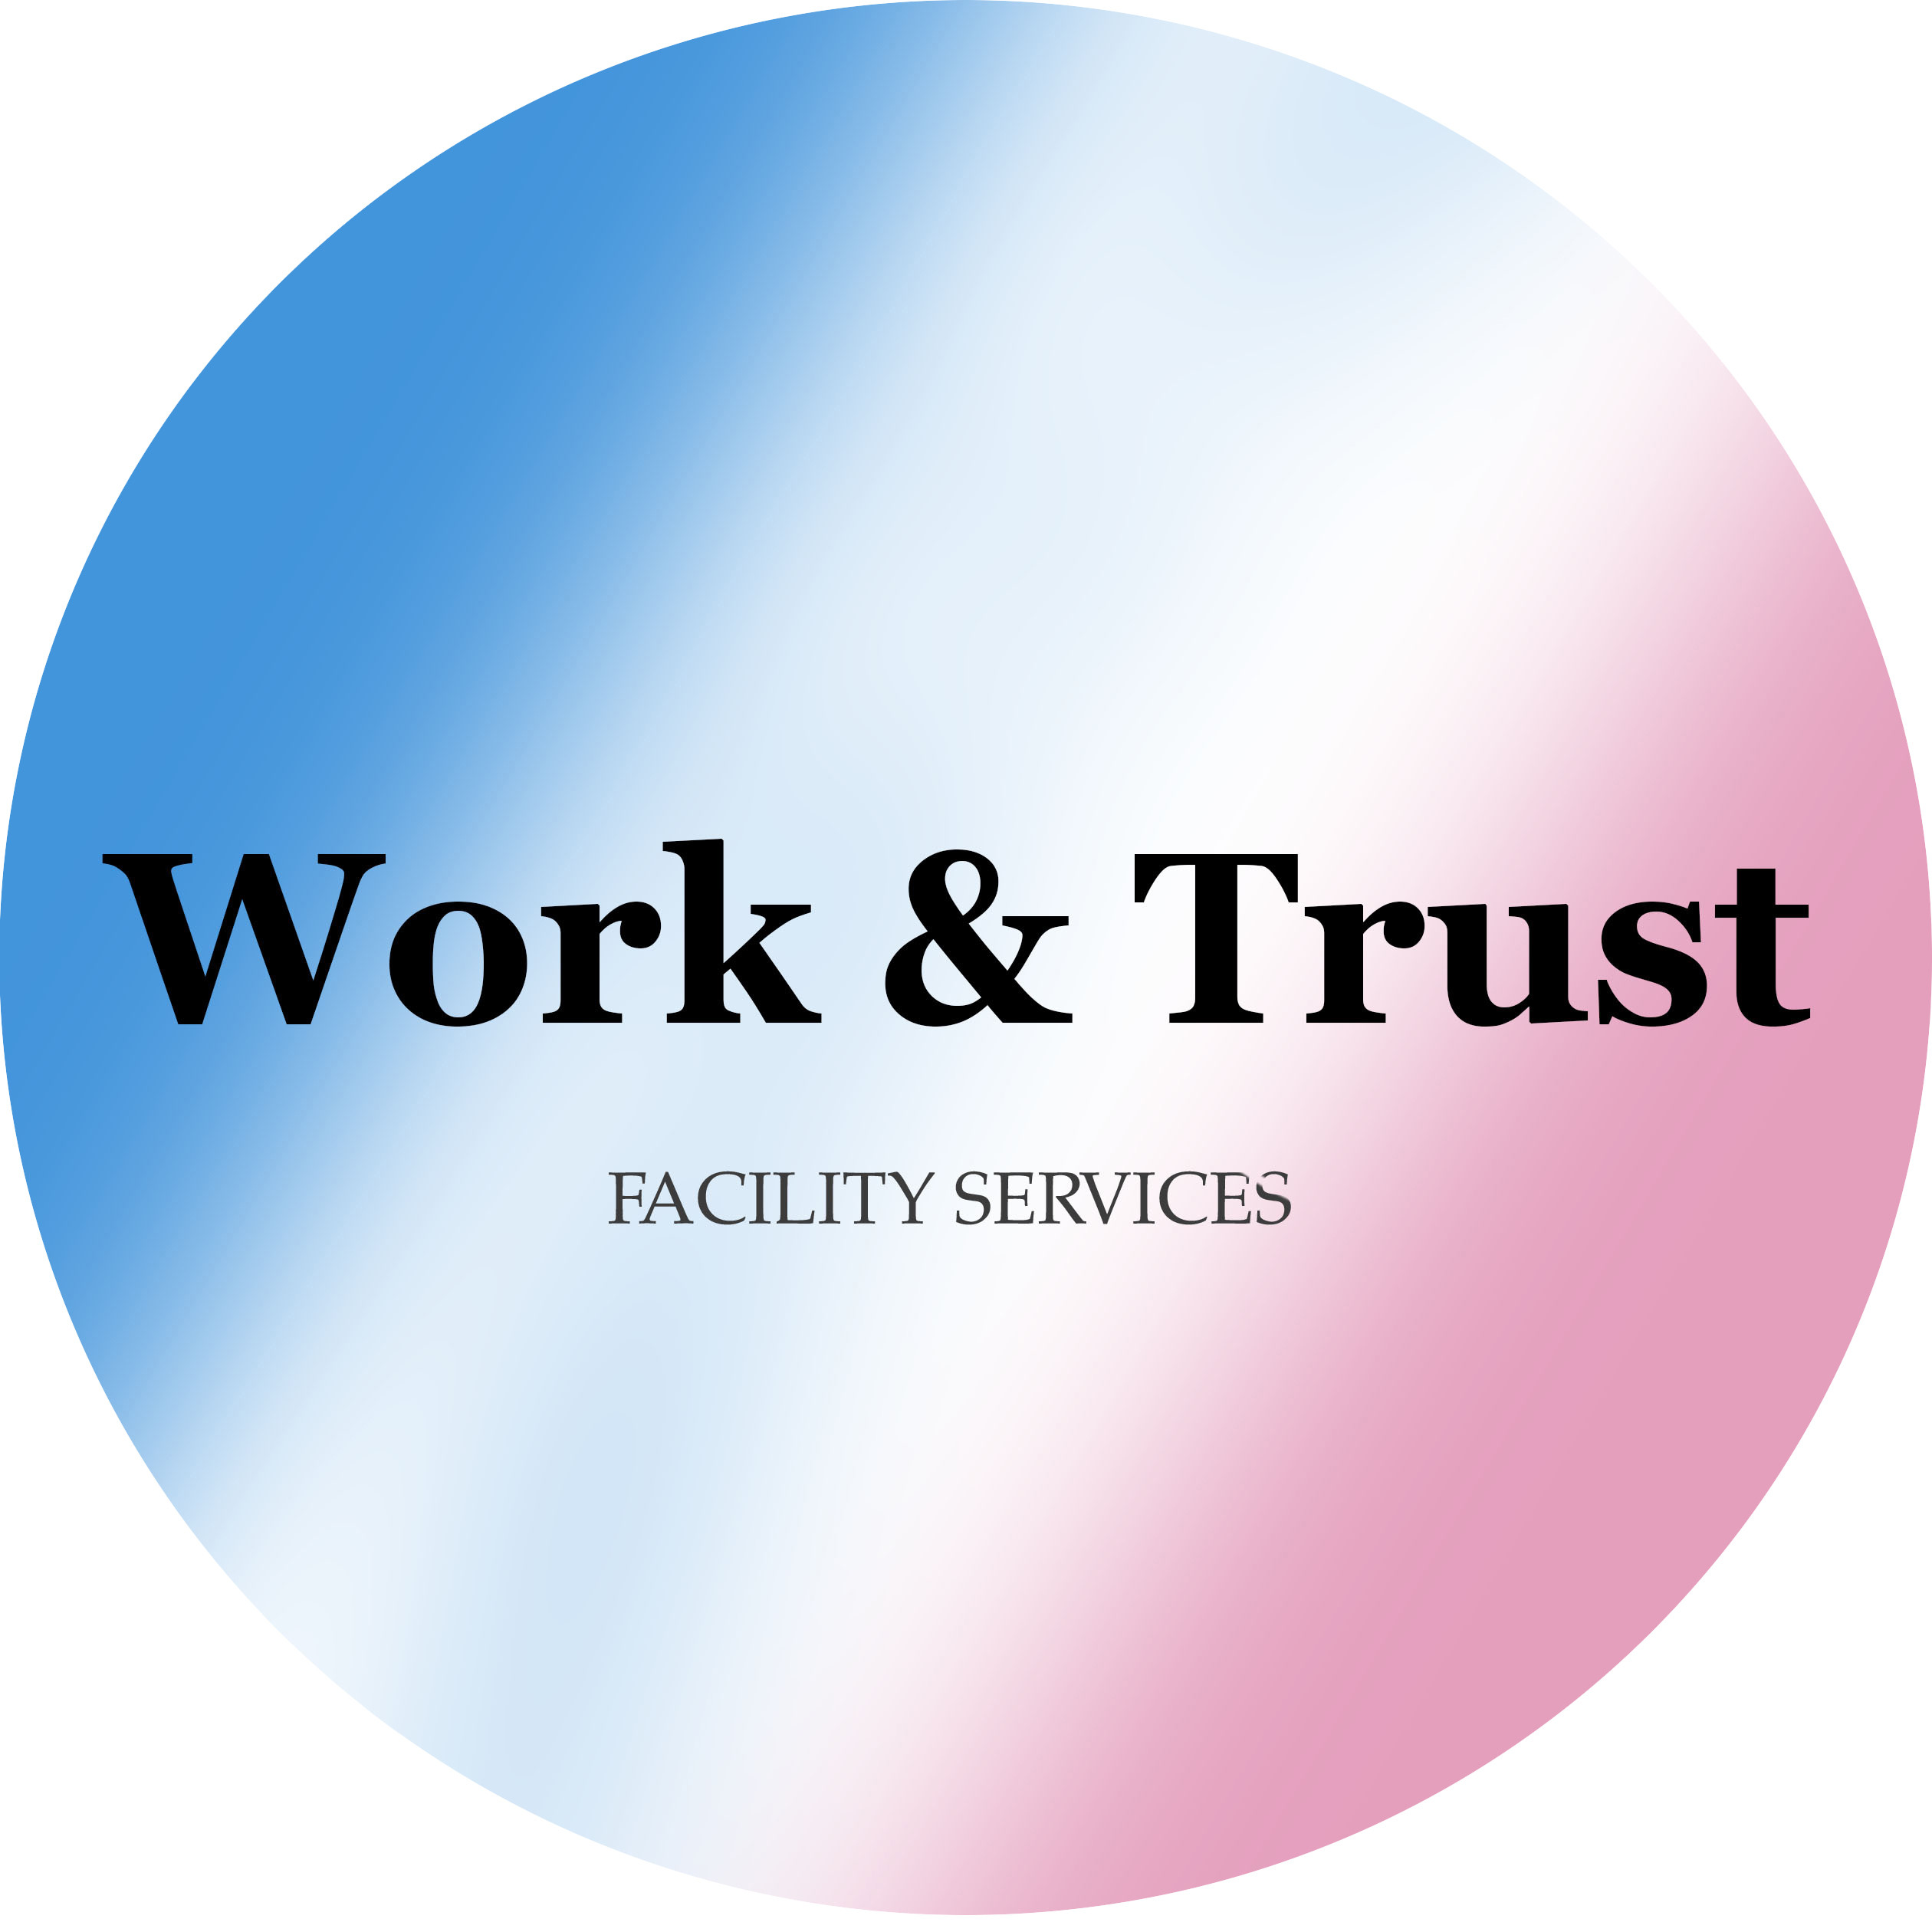 Work & Trust Facility Services